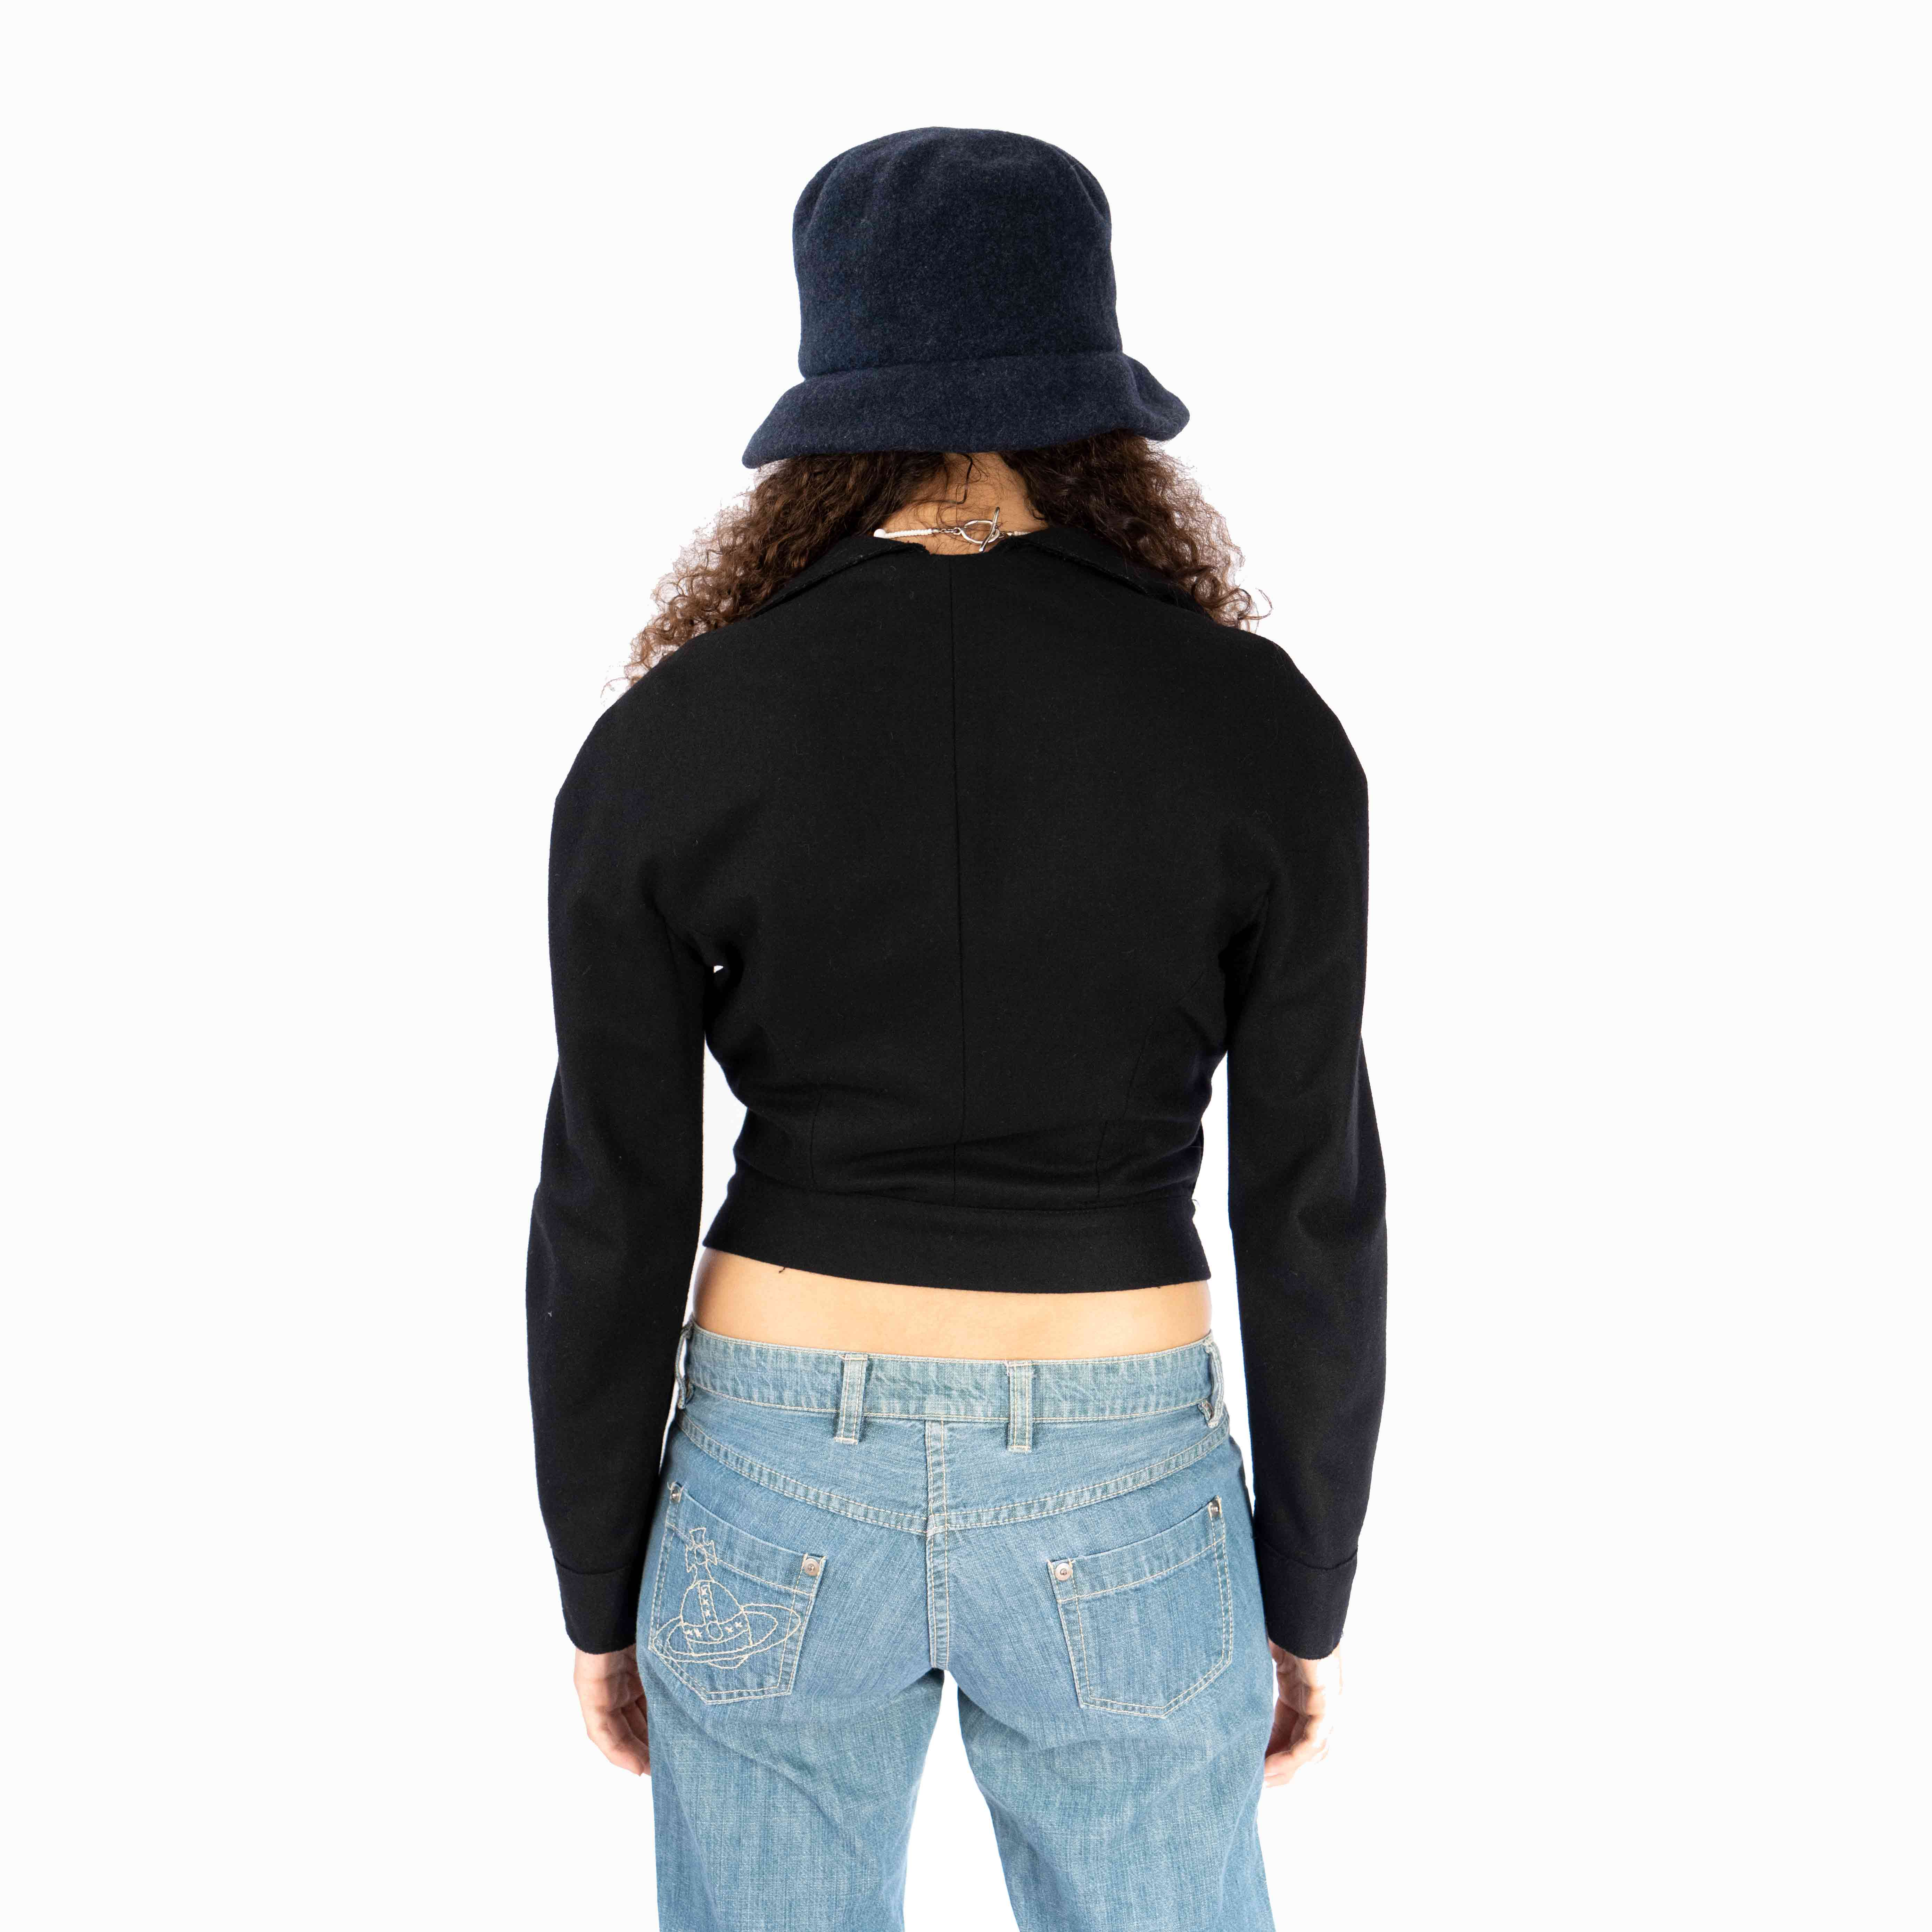 Finally, a blazer that will not overwhelm you. This baby can be worn with a little tank underneath or nothing at all. I highly recommend wearing it with a cute bucket hat like ours.